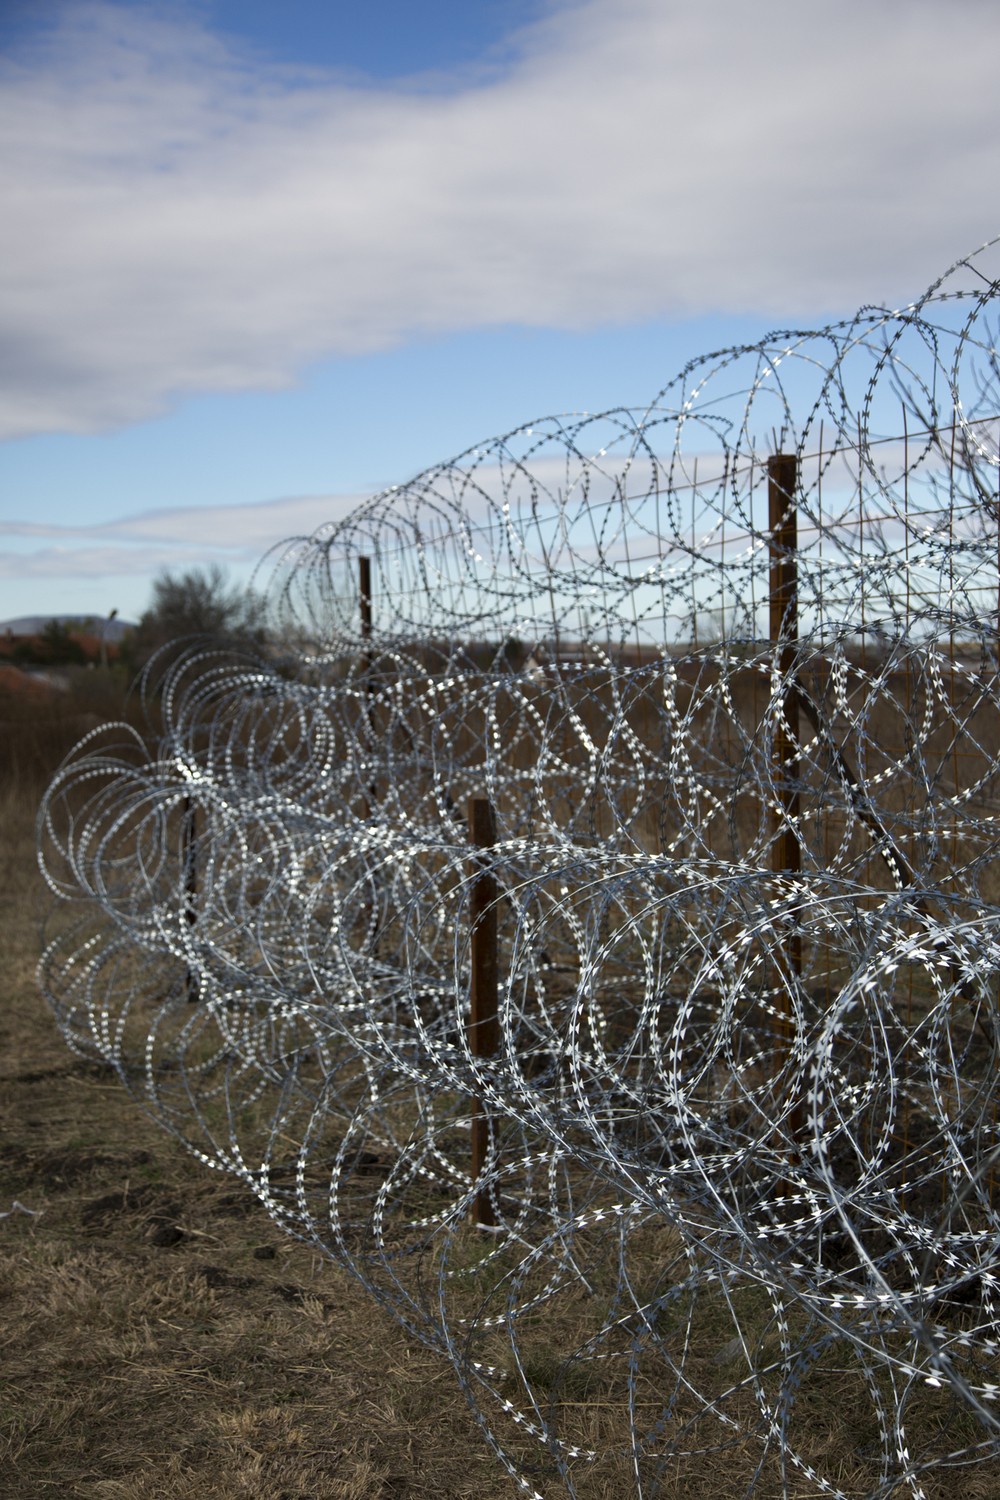 A prototype of the fence Bulgaria is building on the 'green border' area where thousands of migrants have crossed into the EU over the last year.